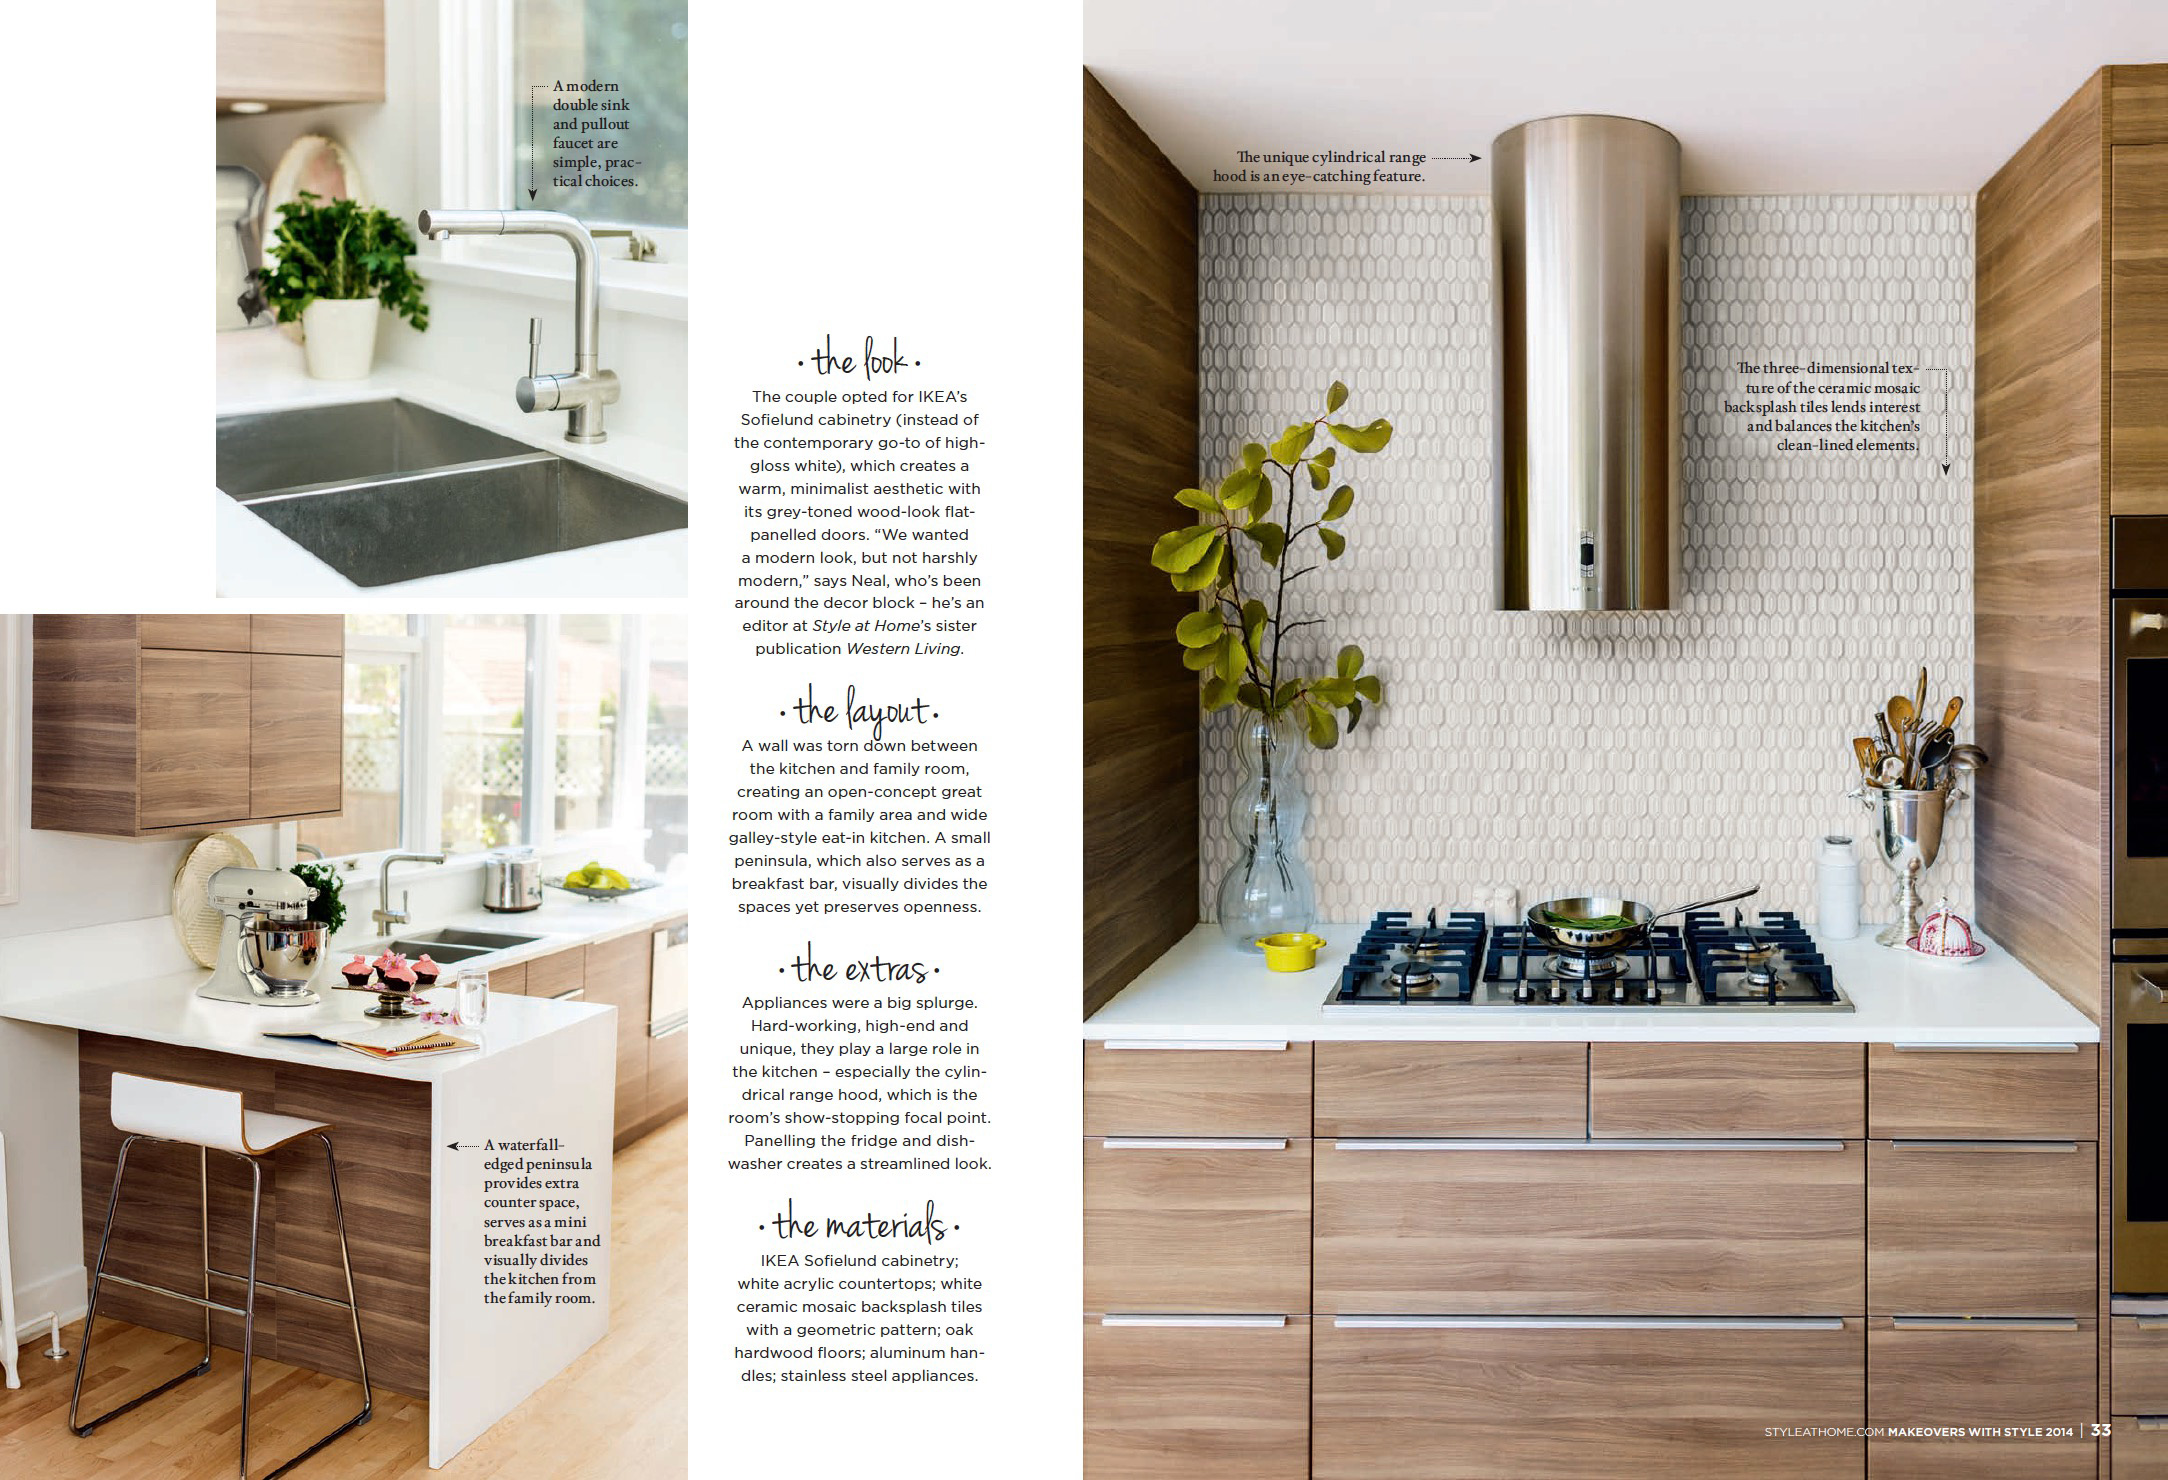 style-at-home-02